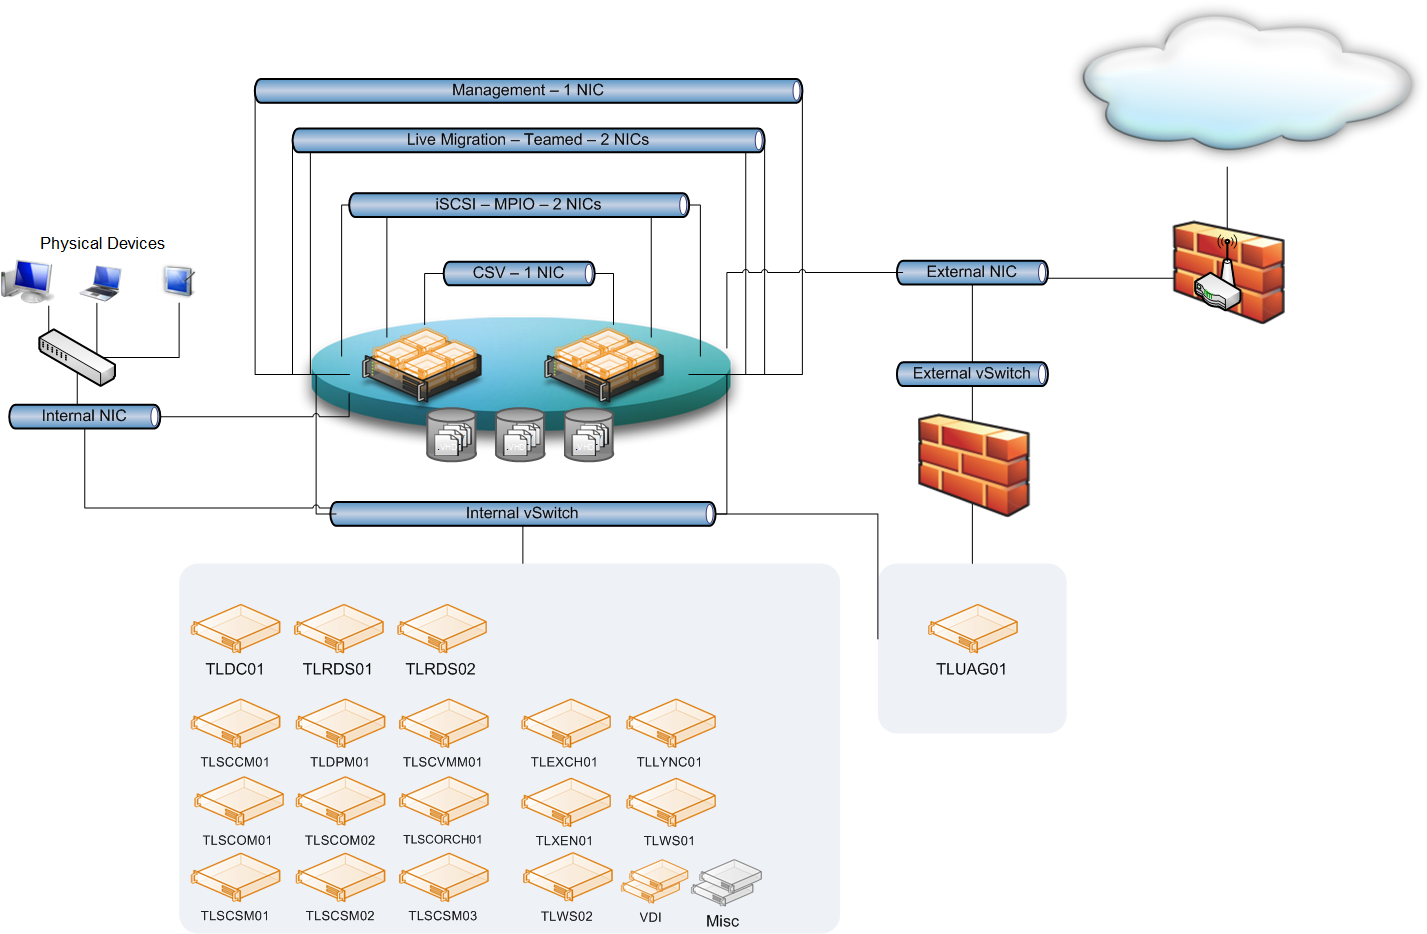 Lic Architecture likewise Vdi In A Box And Citrix  scaler Access Gateway Tying It All Together likewise Designing Your Xendesktop 75 Environment also Vmware Vi3  work  munication Diagram further Citrix Xen. on citrix vdi architecture diagram